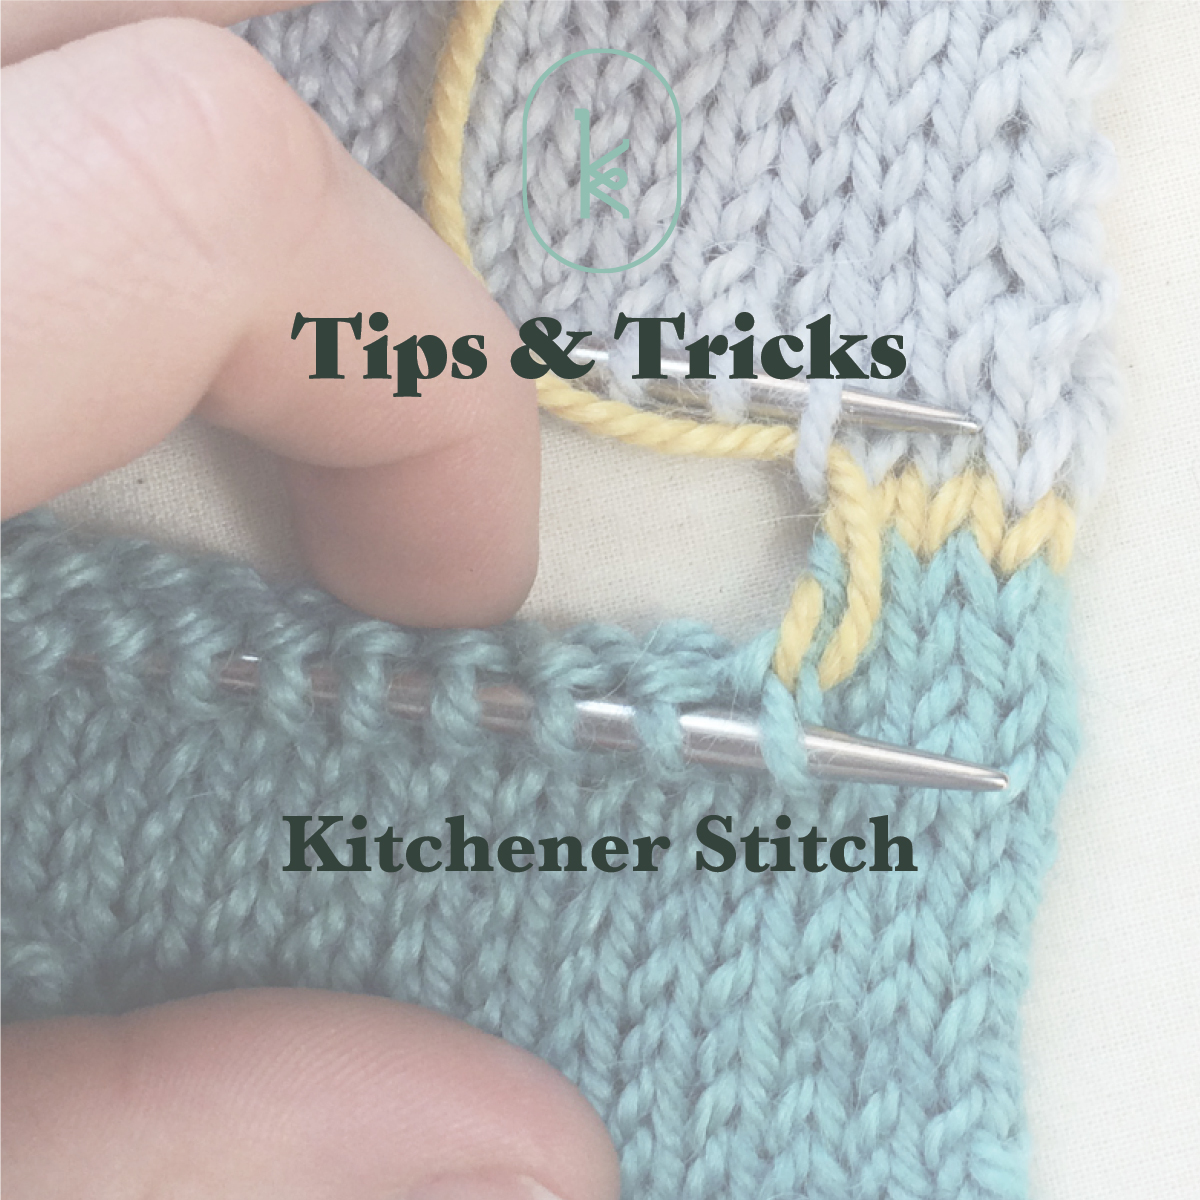 kitchener stitch.jpg